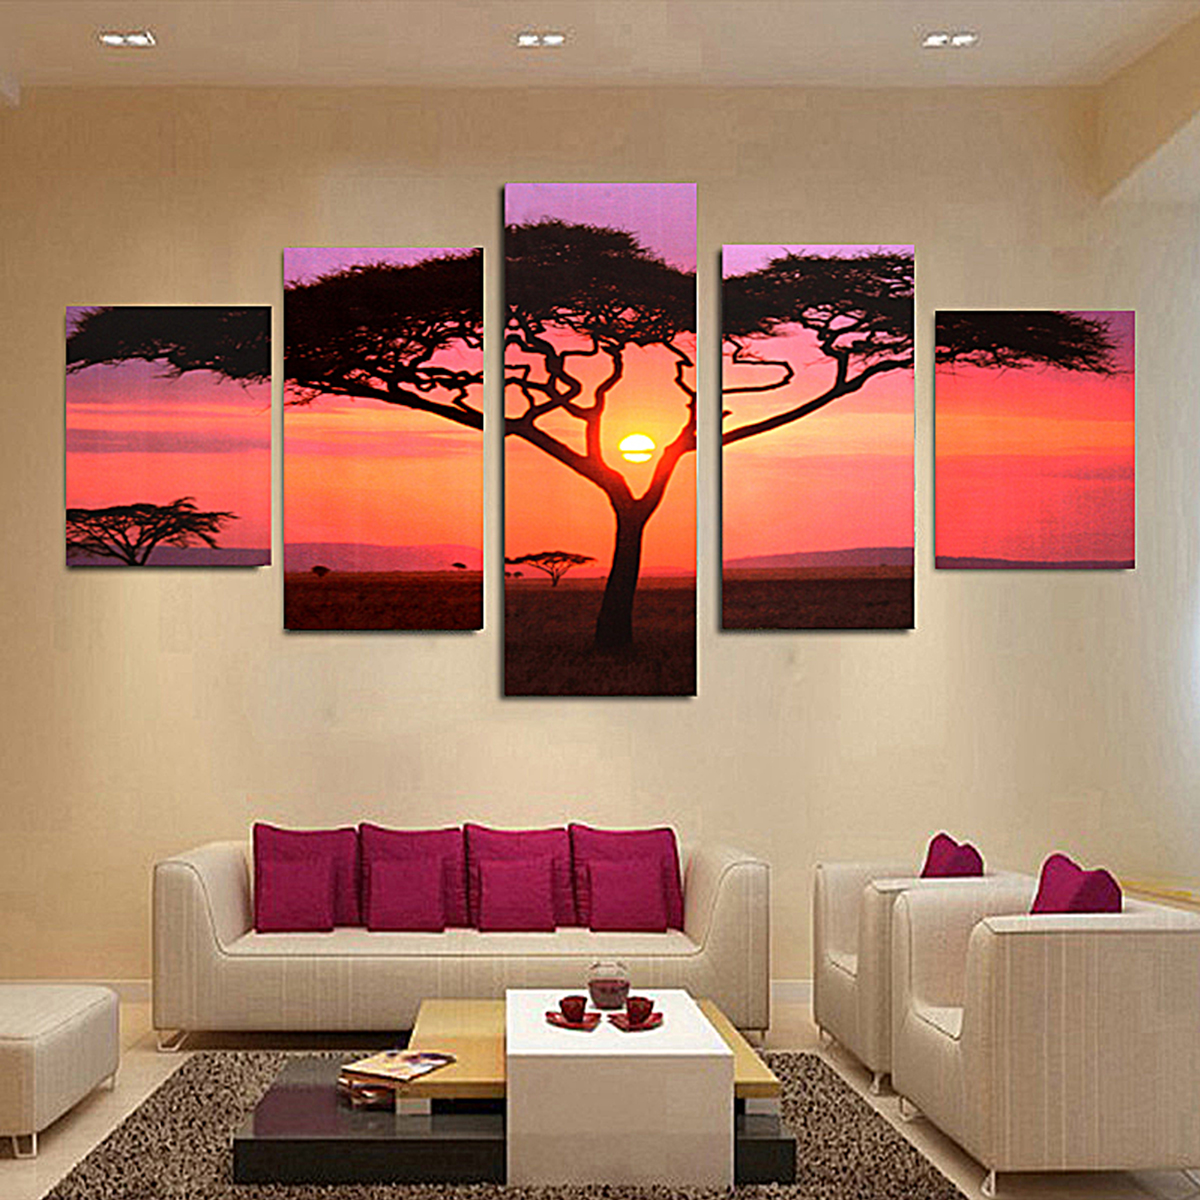 5pcs arbre tableau peinture huile toile abstraite pr mural salon chambre d cor achat vente. Black Bedroom Furniture Sets. Home Design Ideas